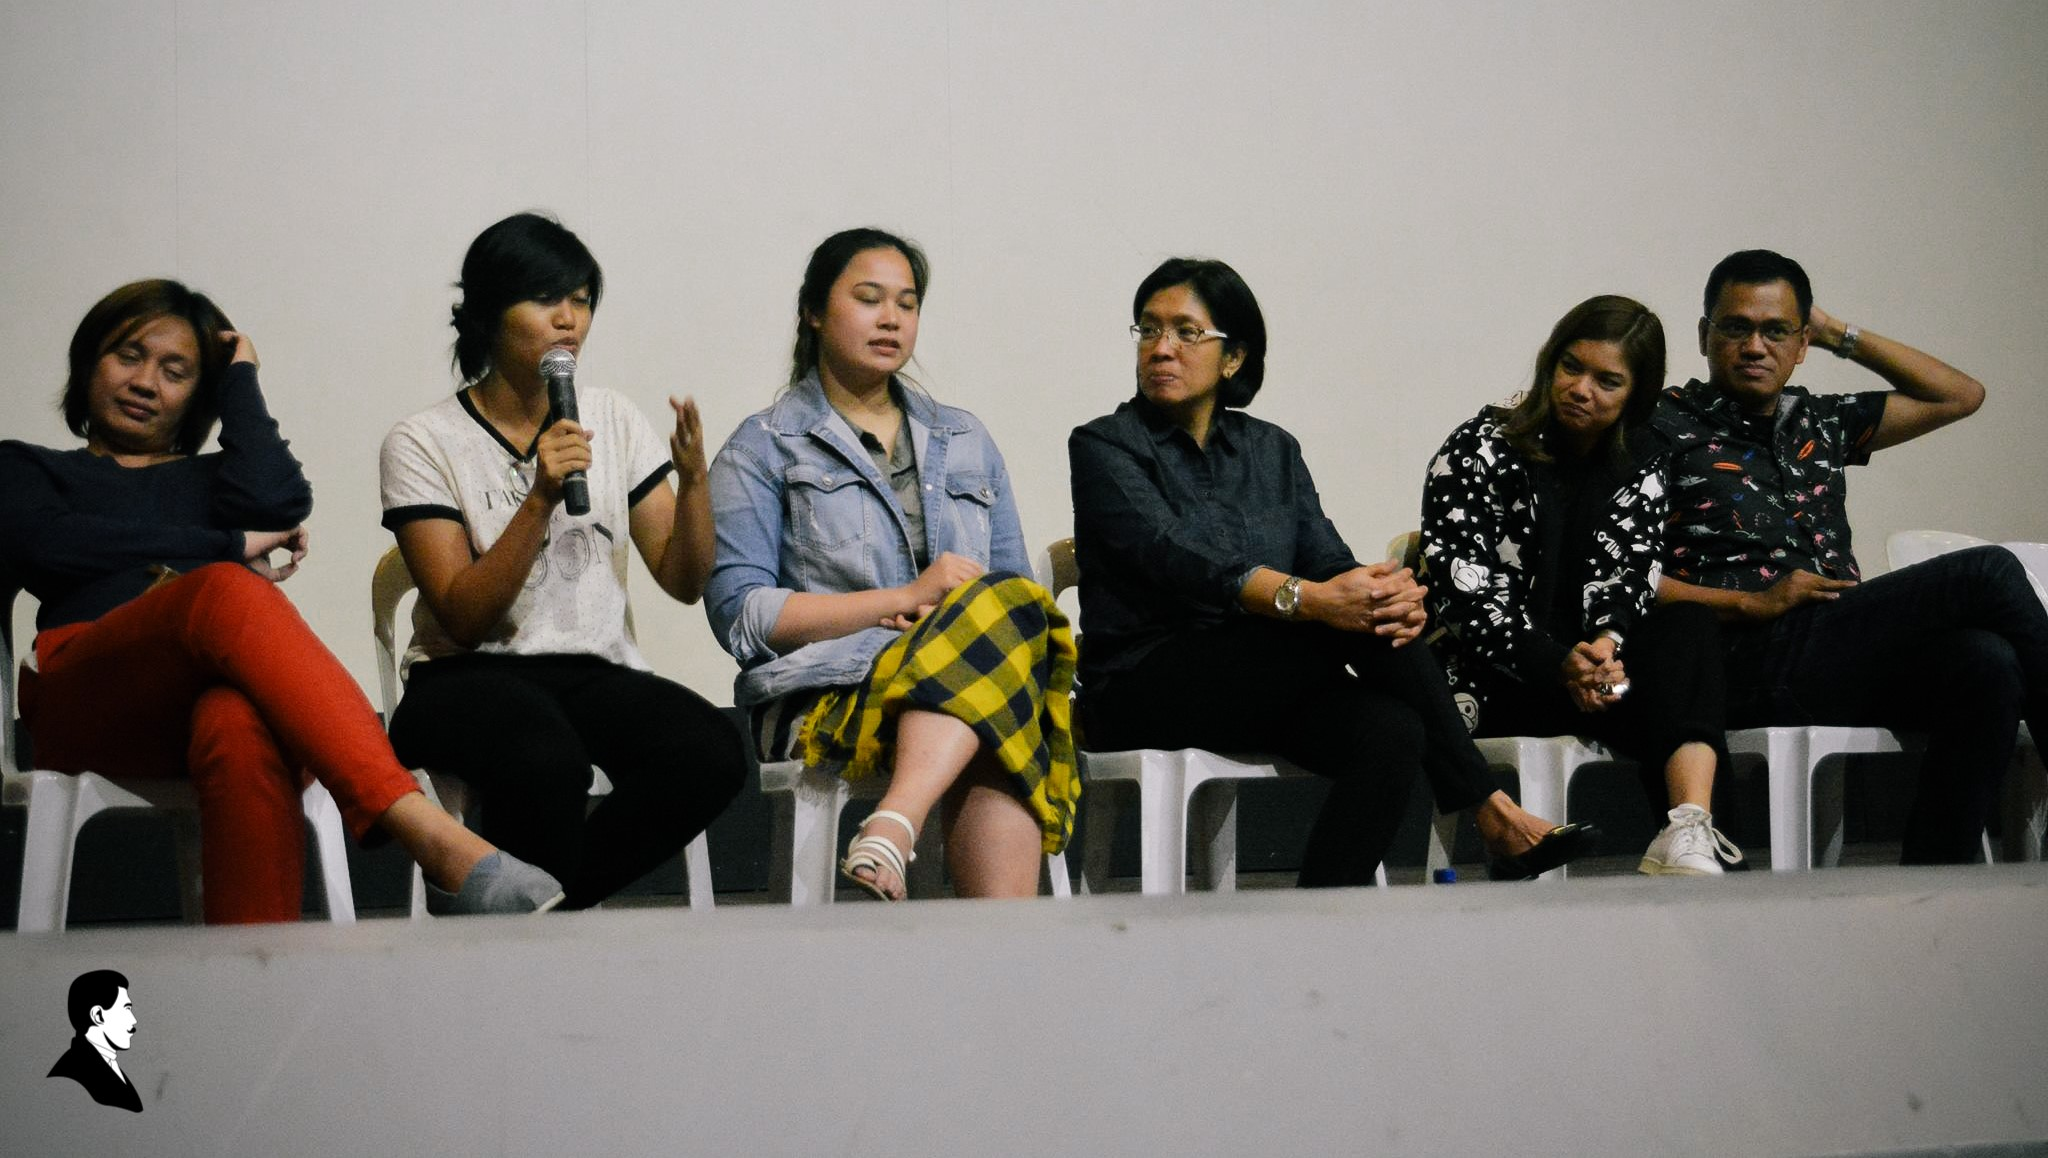 Directors of Honor Thy Father answered questions from the audience during the movie's showing at the UP Cine Adarna last Friday.